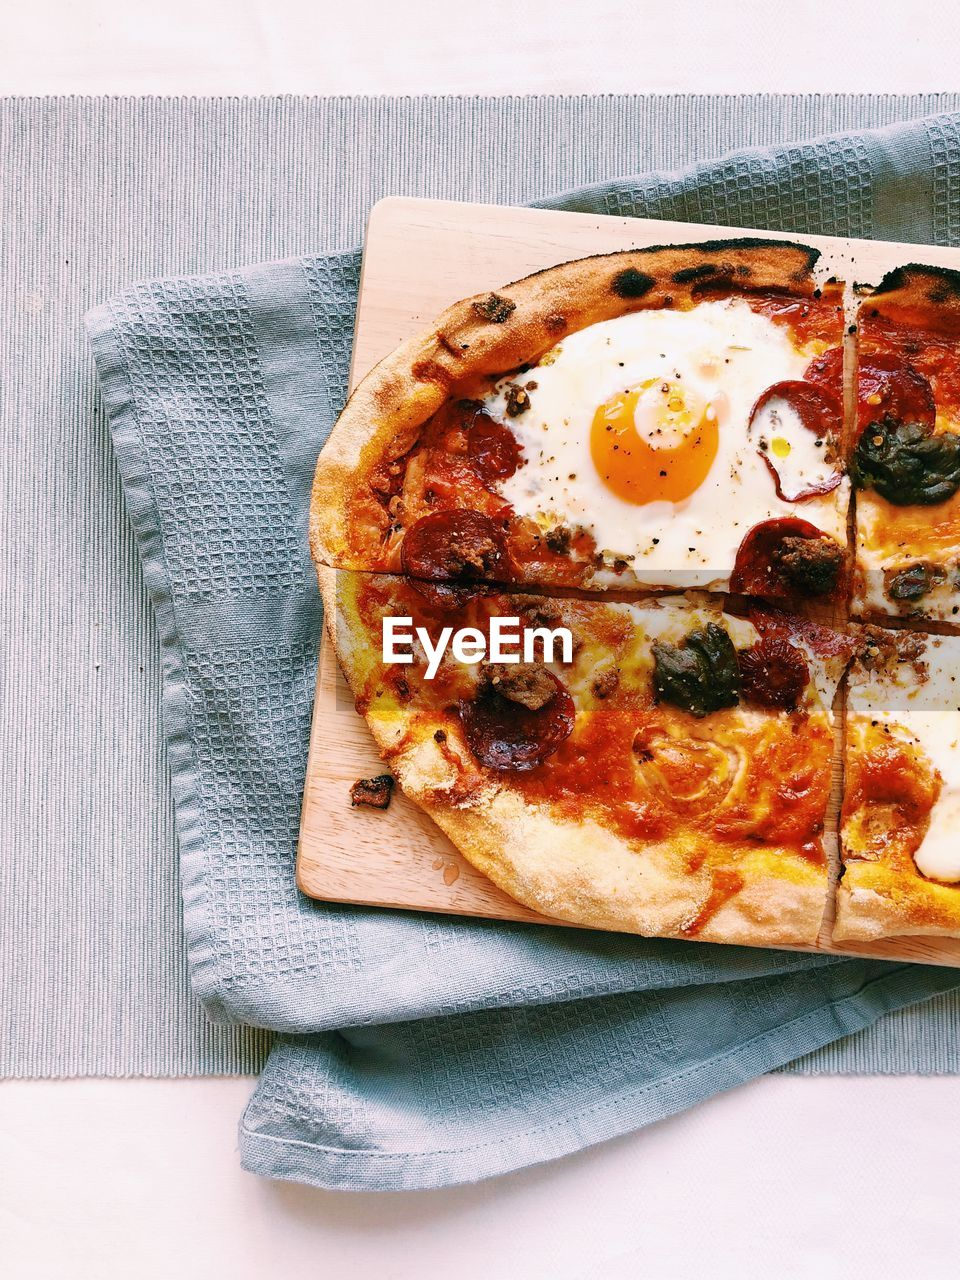 food, ready-to-eat, food and drink, freshness, table, still life, directly above, indoors, close-up, no people, unhealthy eating, napkin, high angle view, dairy product, plate, indulgence, pizza, vegetable, tomato, temptation